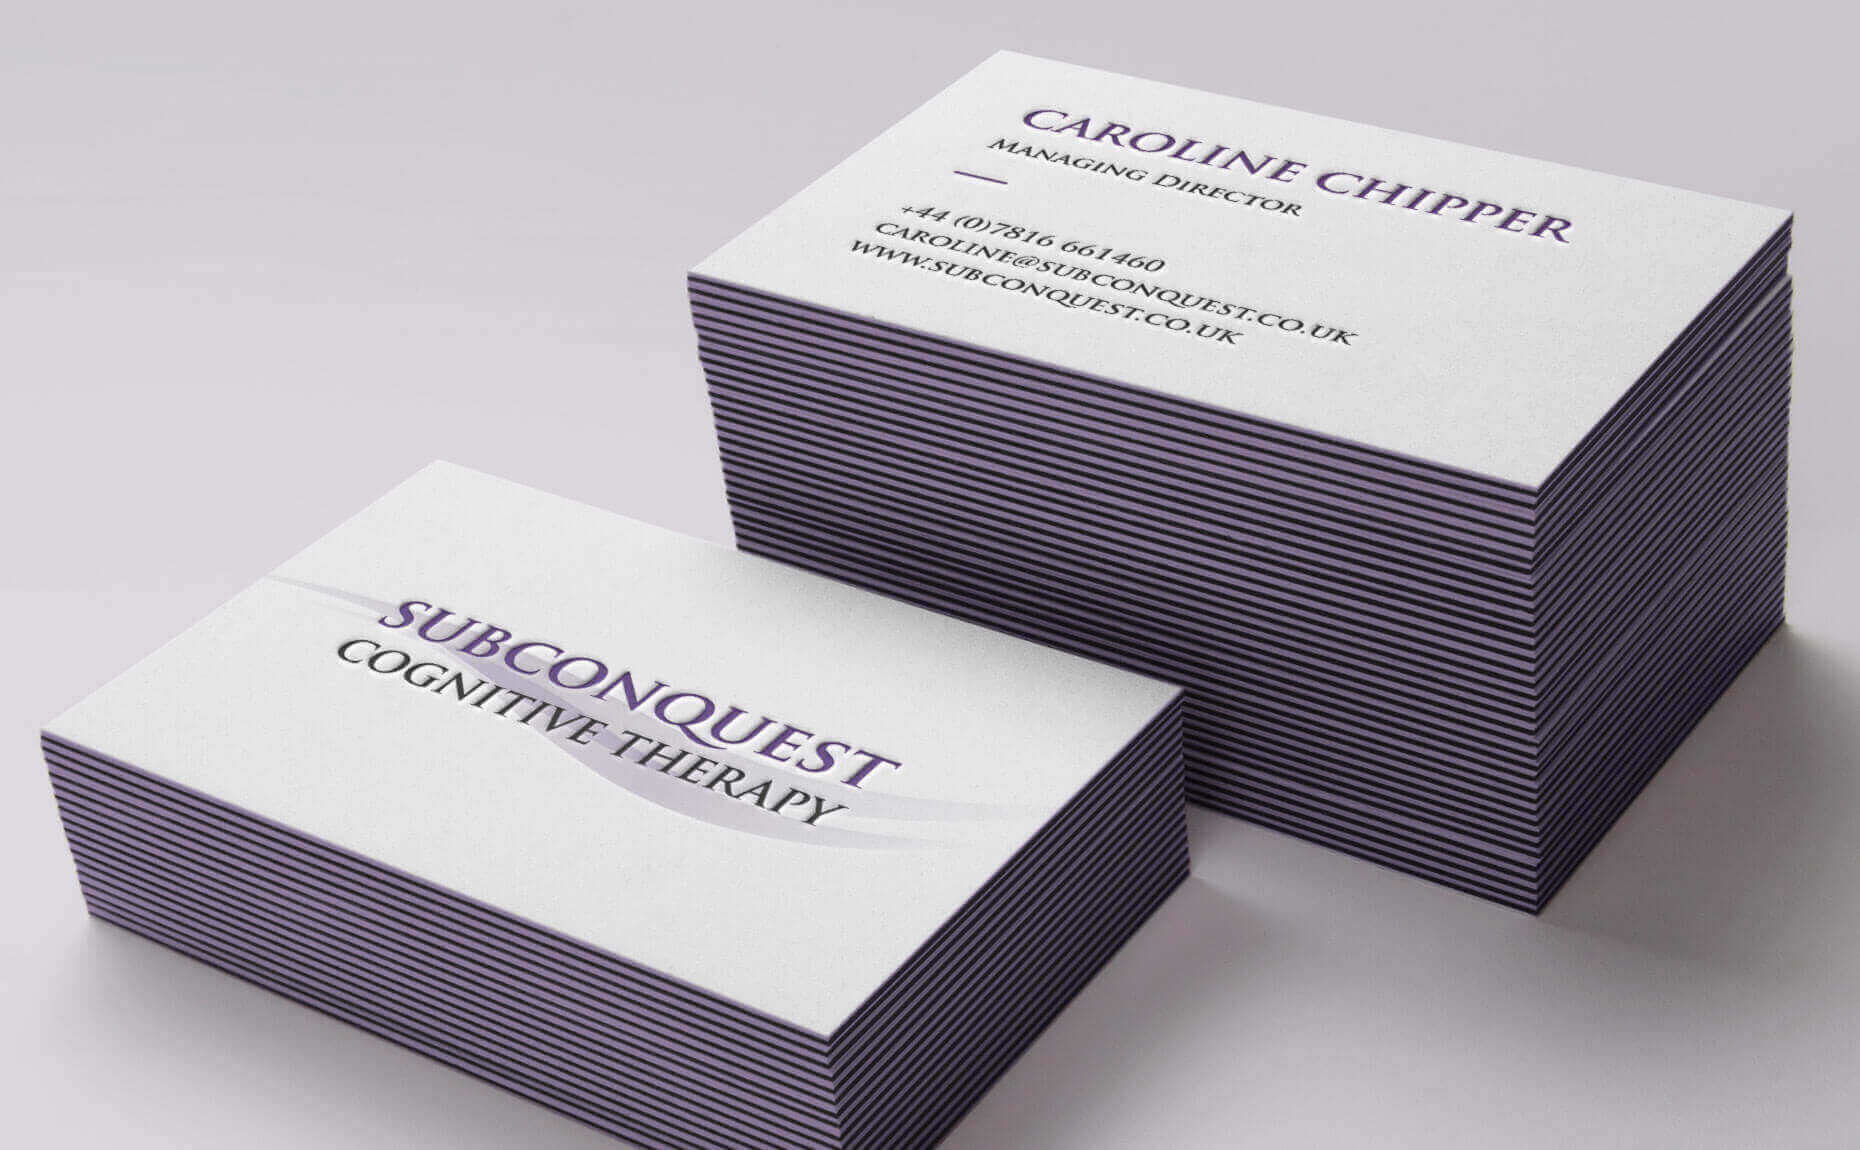 Subconquest business cards